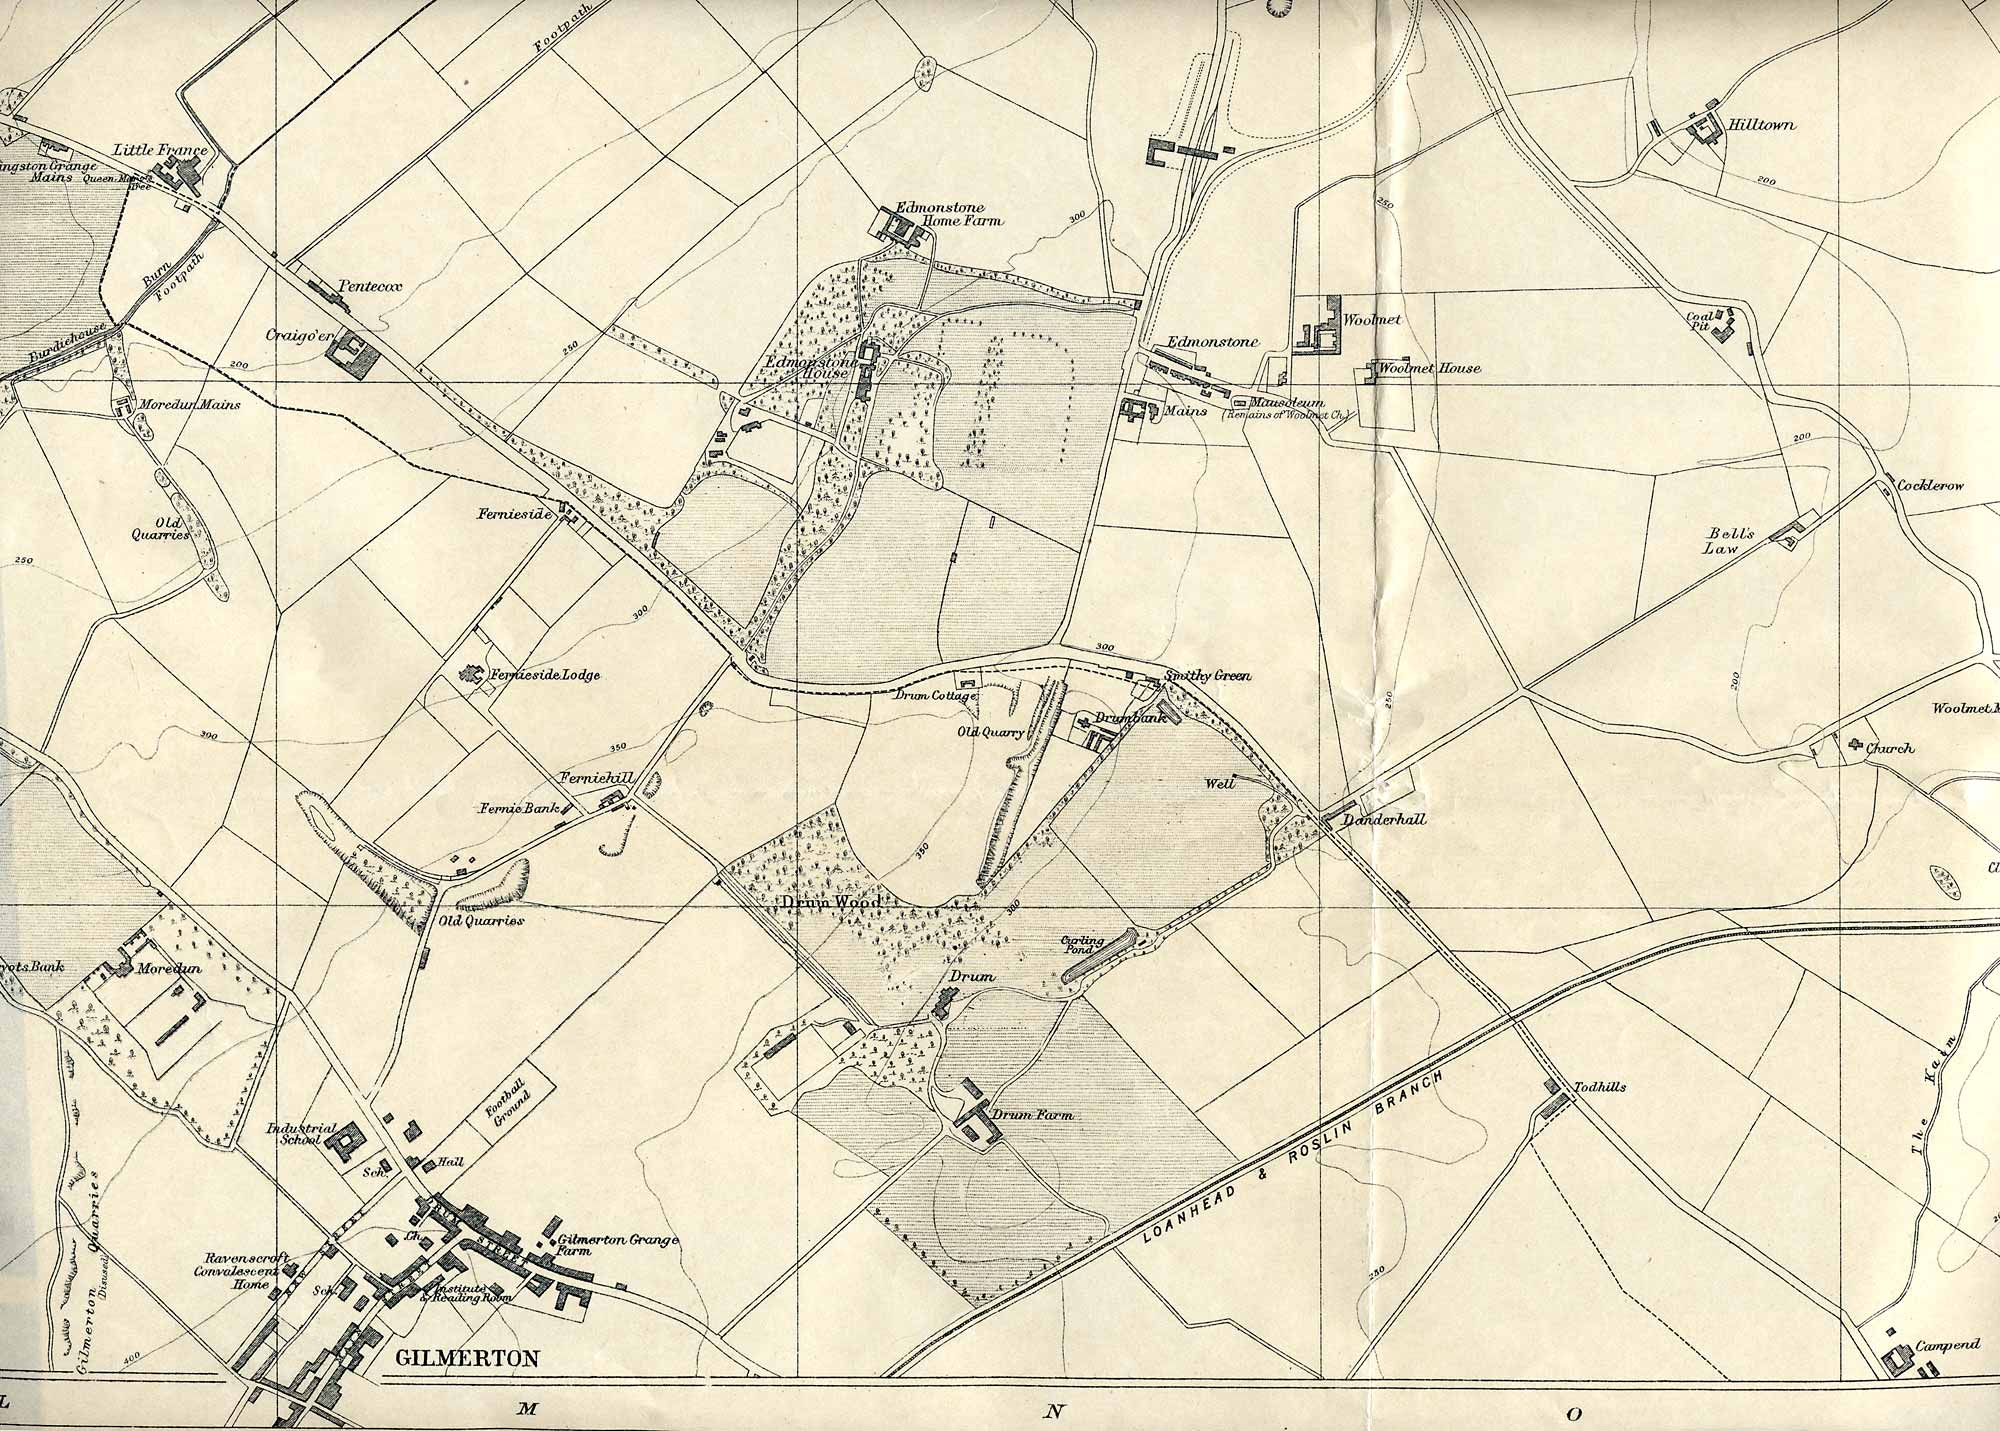 Edinburgh and Leith map, 1925  -  Gilmerton section  -  Enlarged